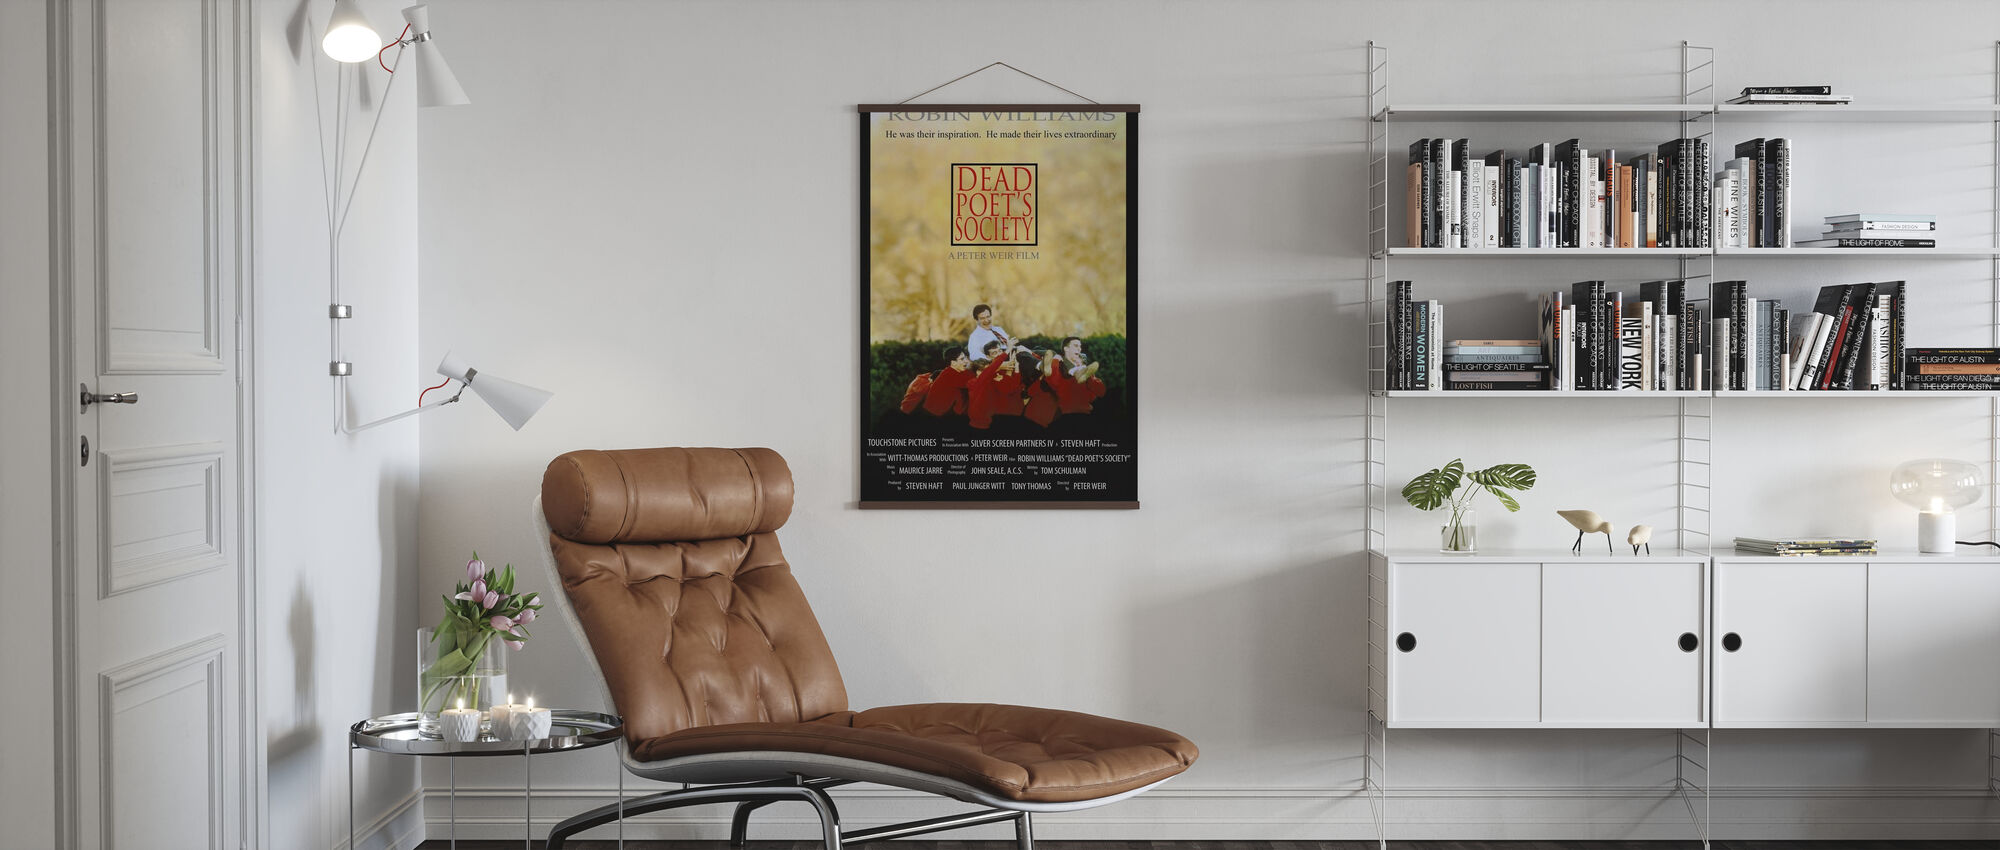 Dode Dichters Society - Poster - Woonkamer